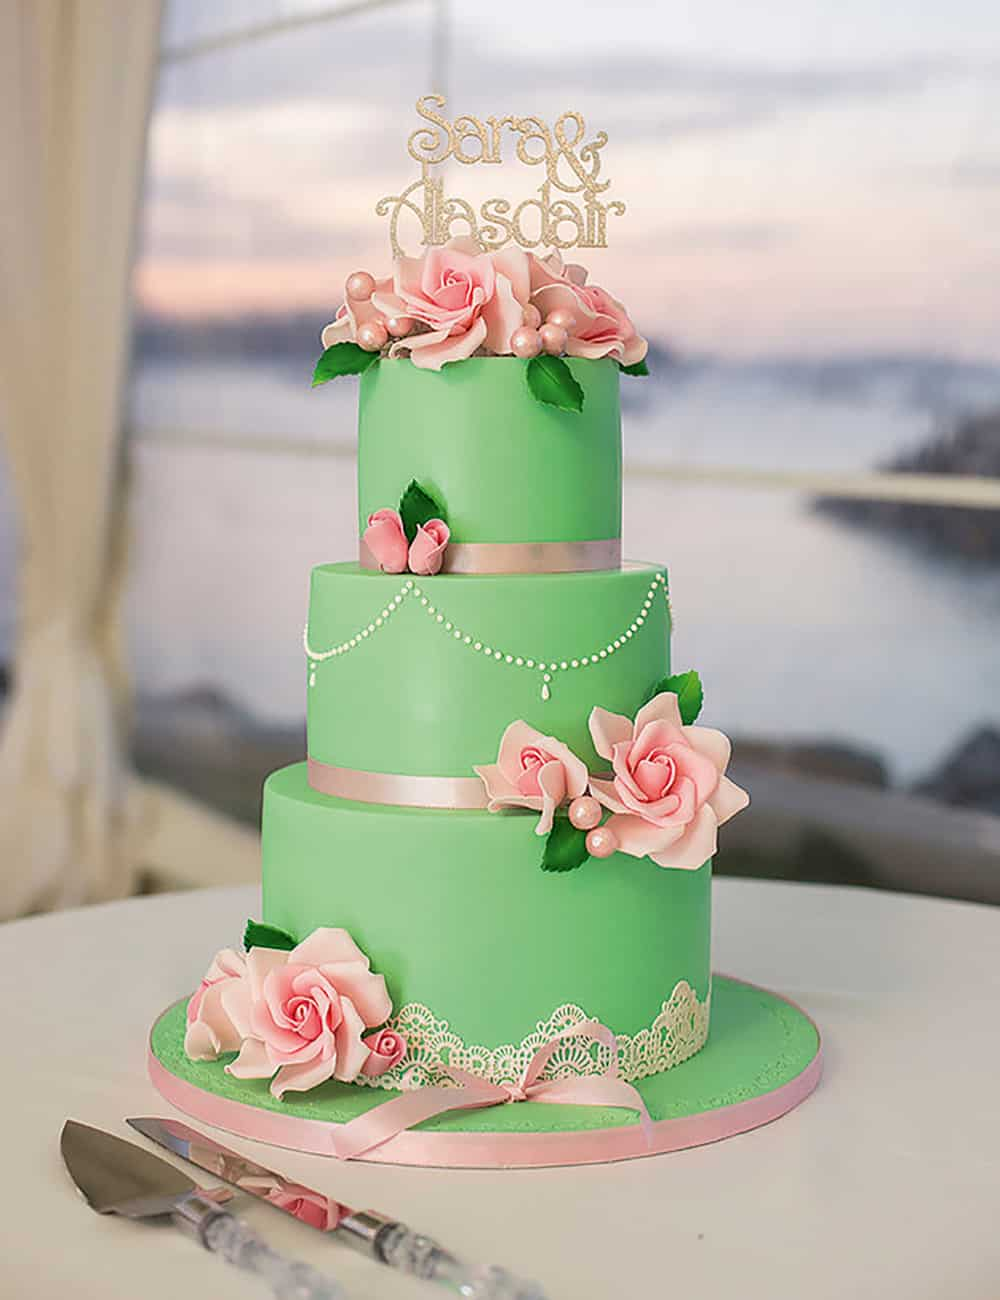 Delicious frosted green and pink ribbon wedding cake